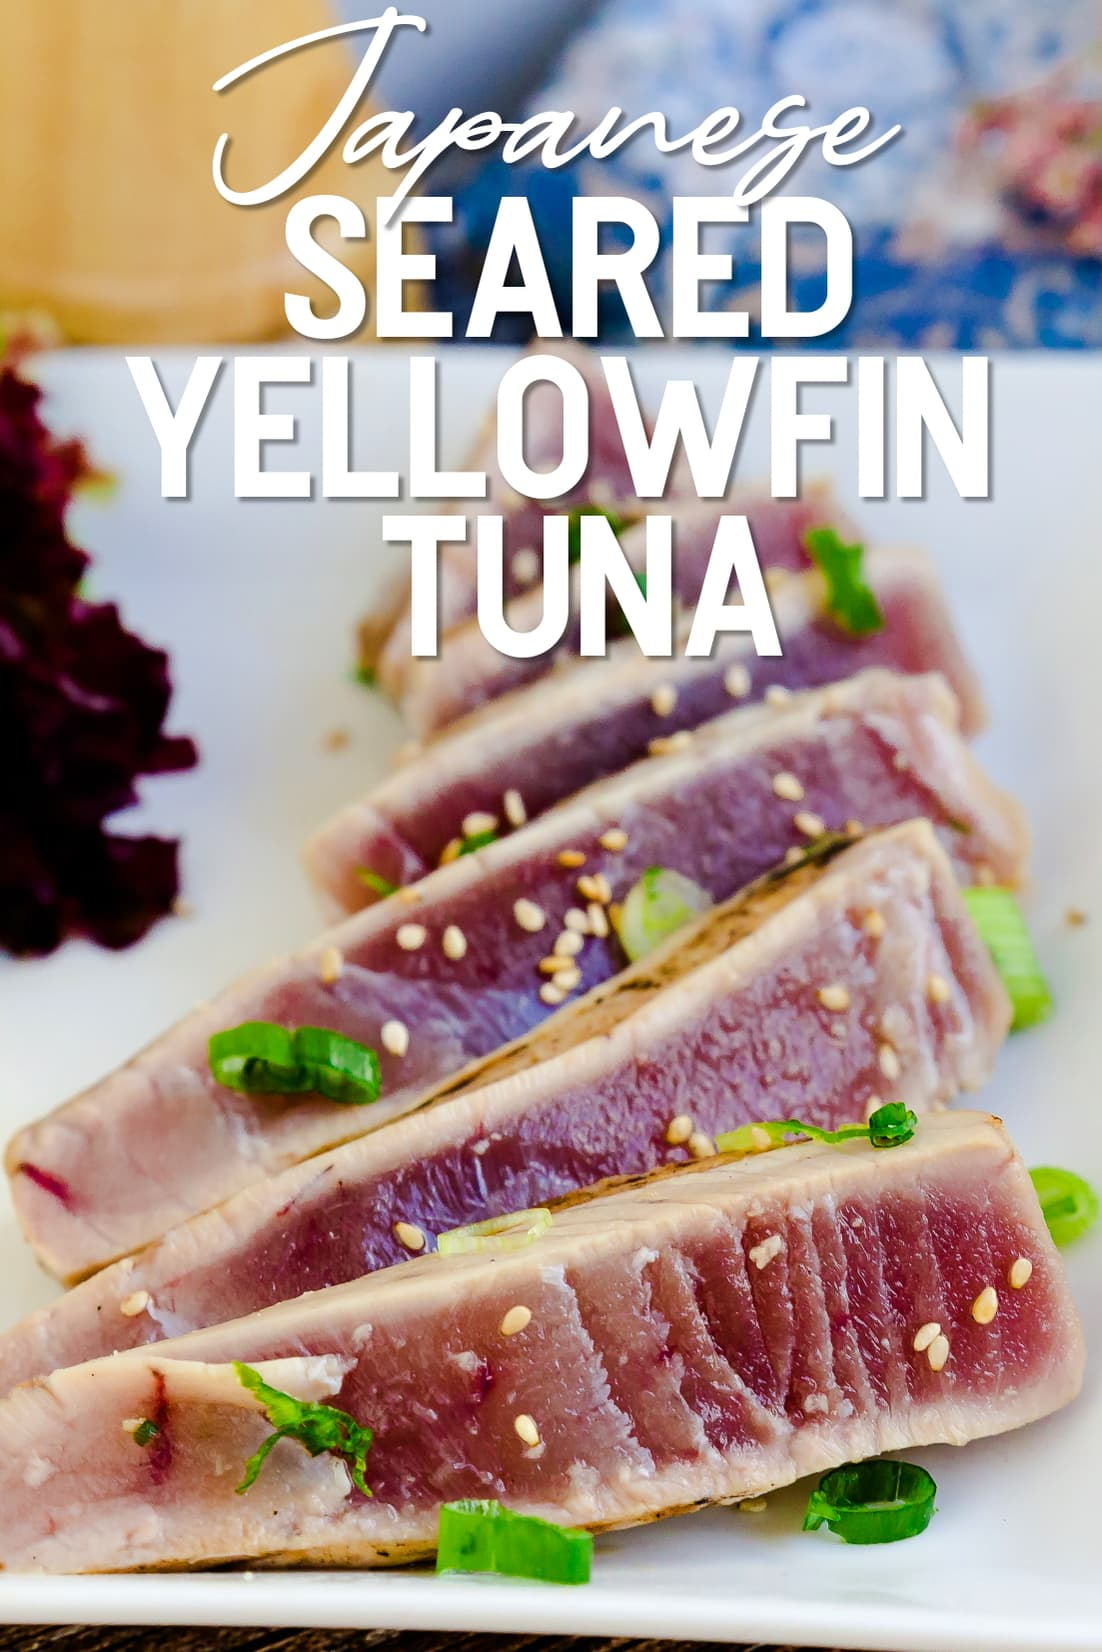 Seared Yellowfin Tuna served on a plate with sesame seeds and green onions sprinkled on top